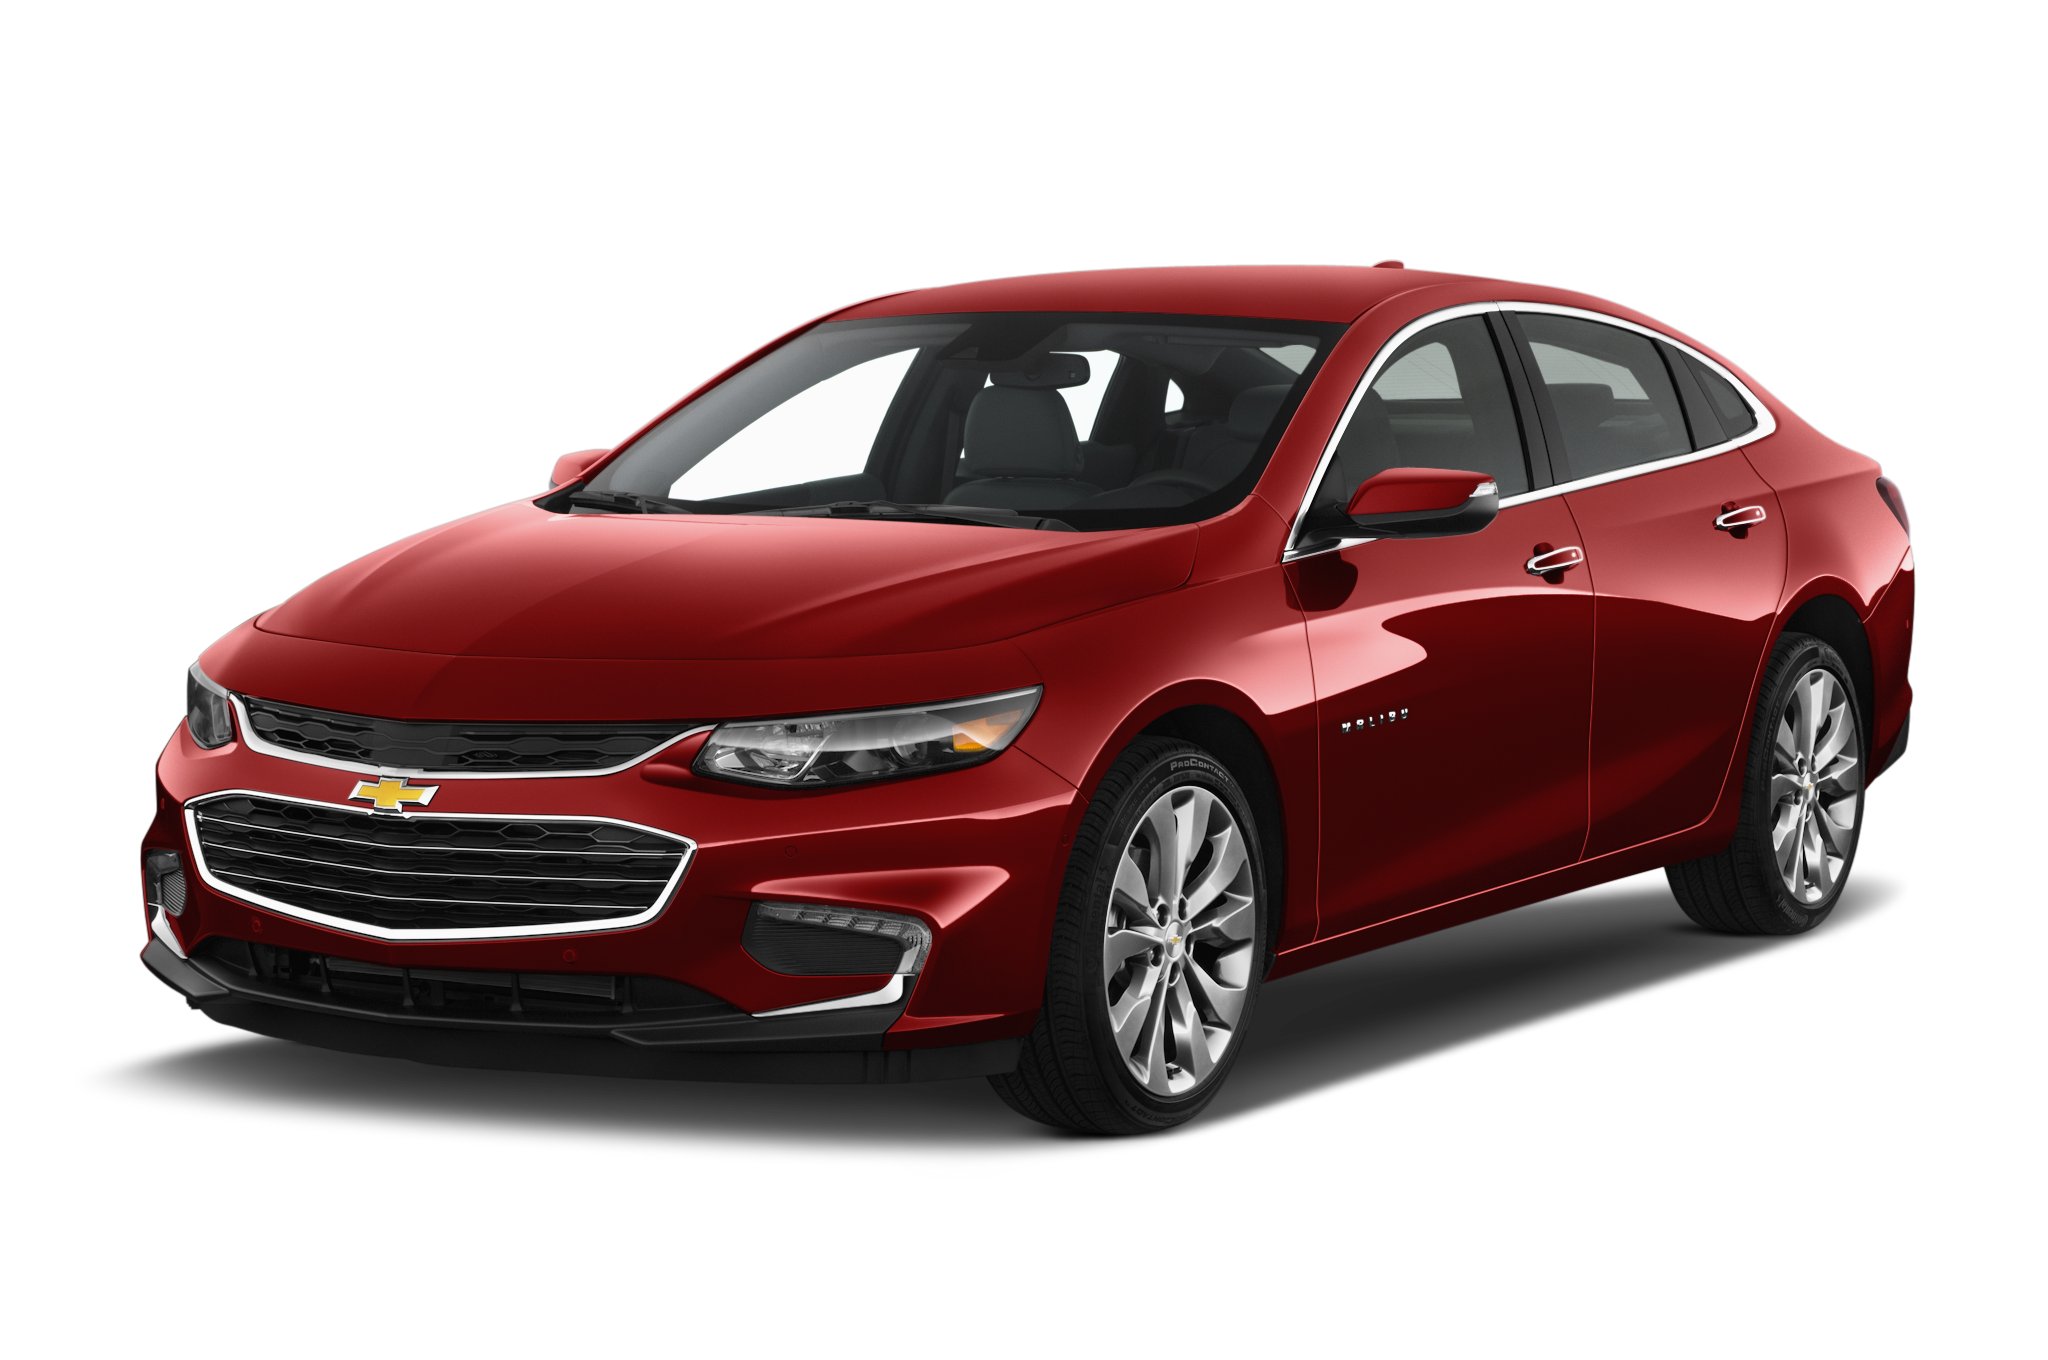 2016 malibu png. Chevrolet reviews and